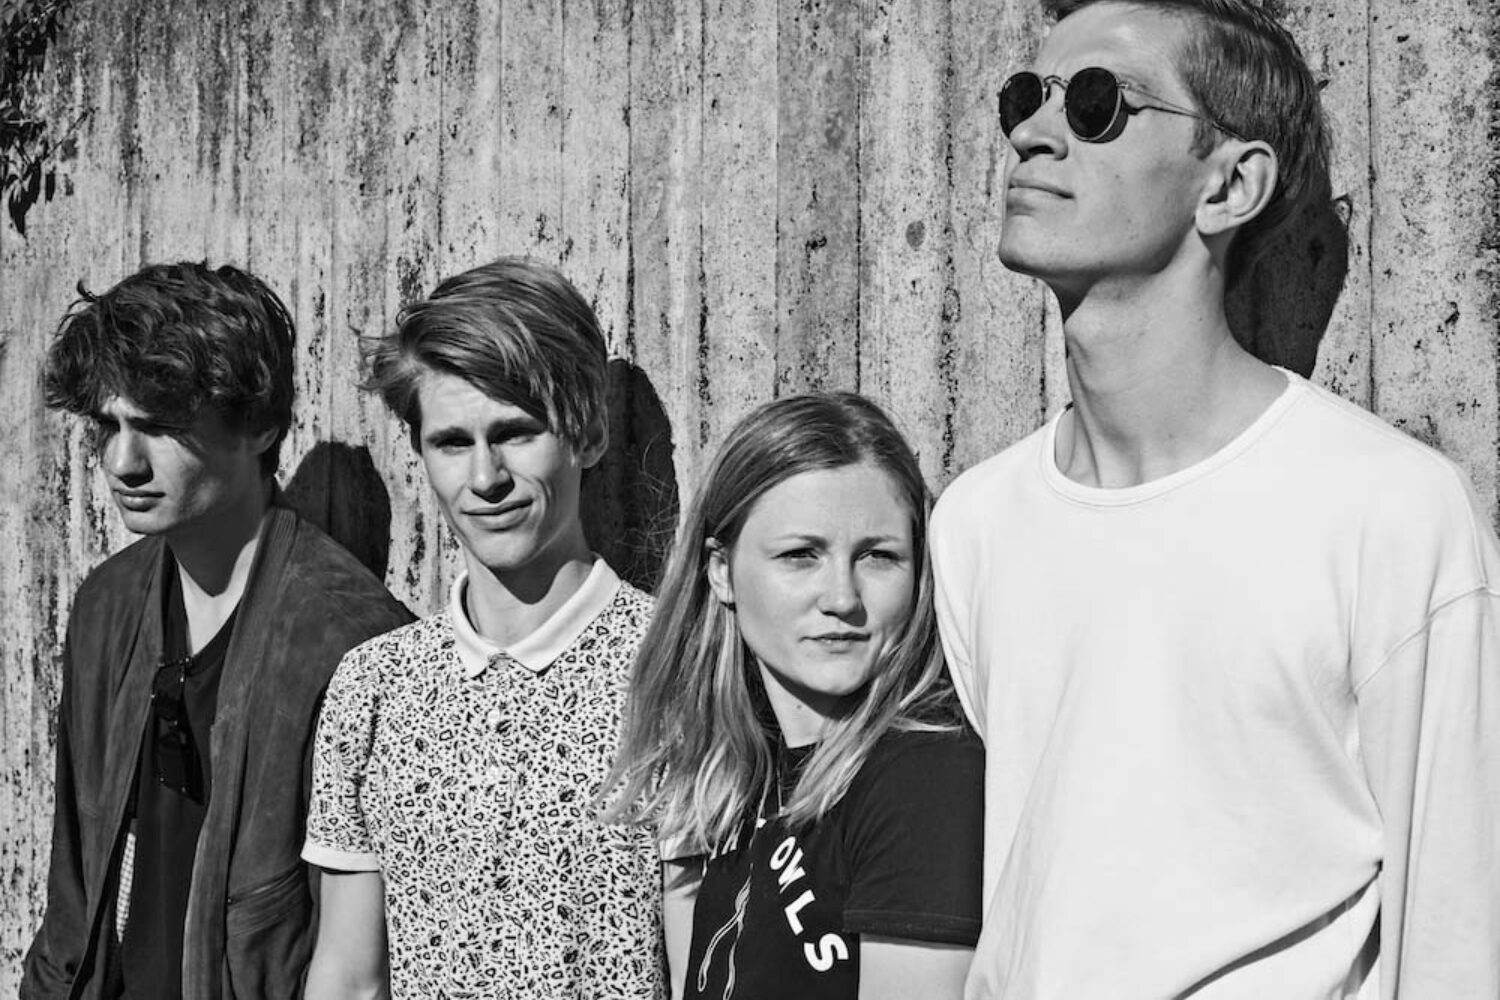 Sløtface dream of working at 'Empire Records' in new single